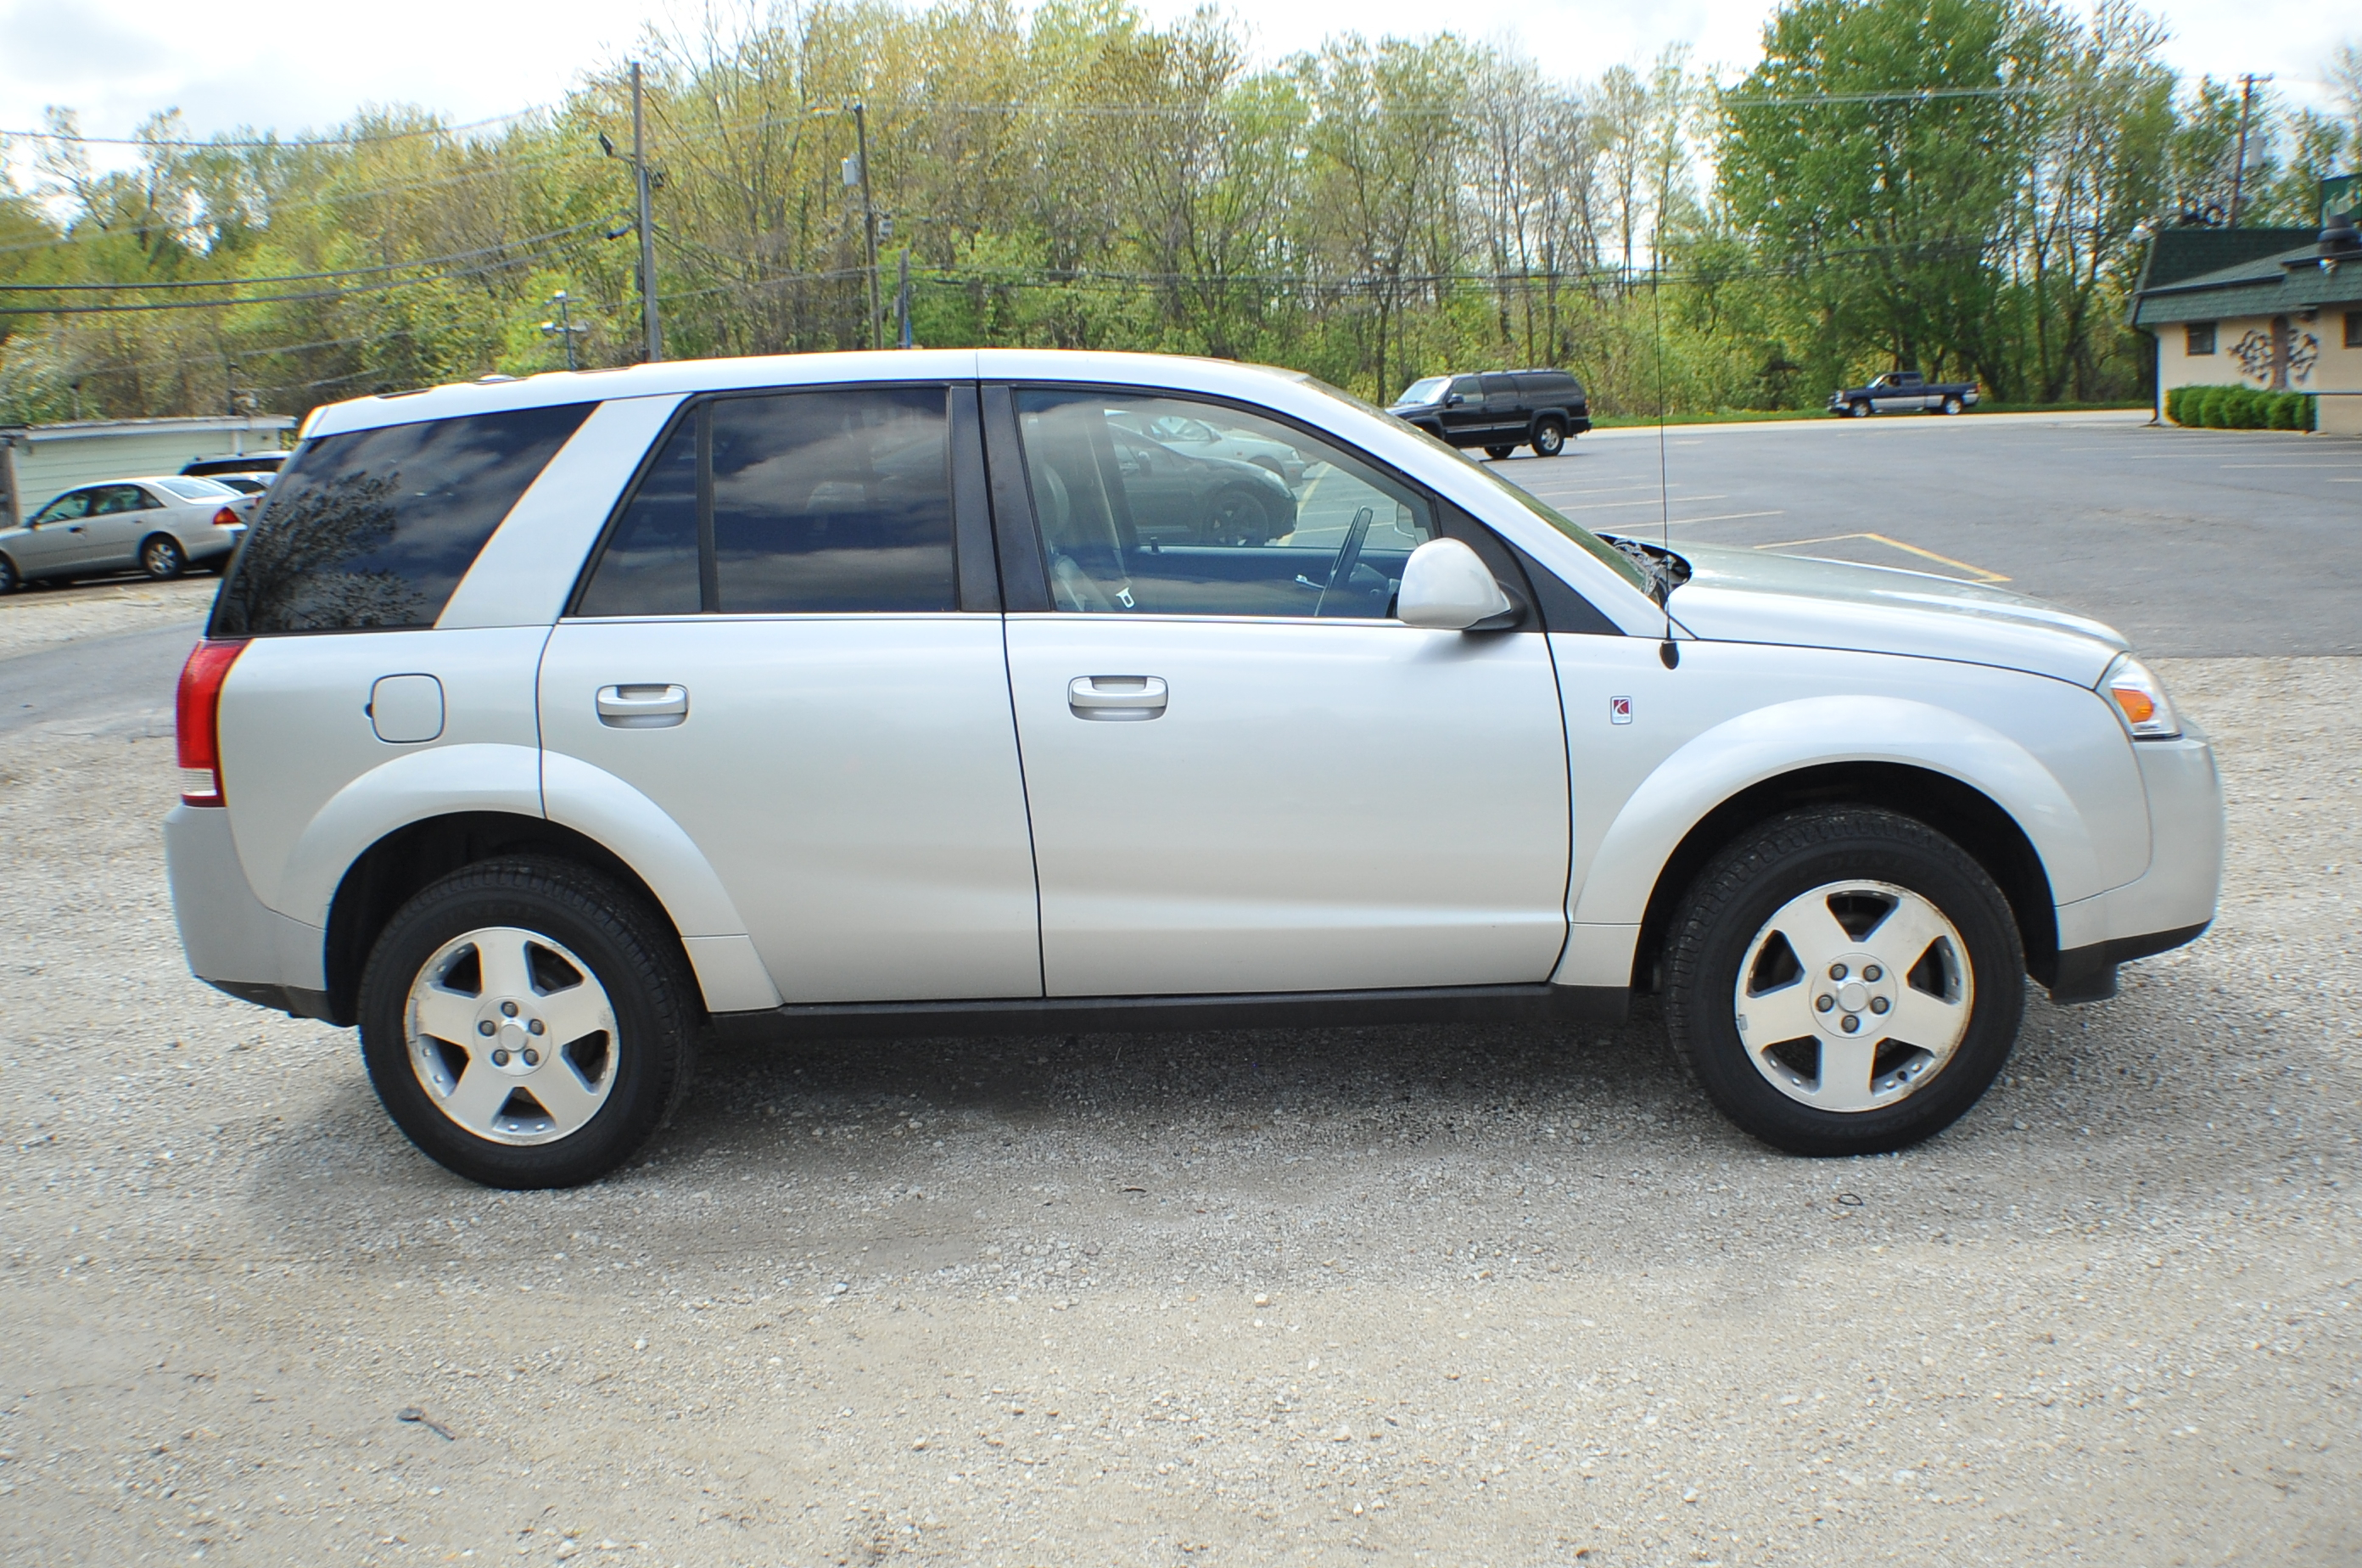 2006 Saturn Vue Silver AWD SUV Best Used Car Sale Beach Park